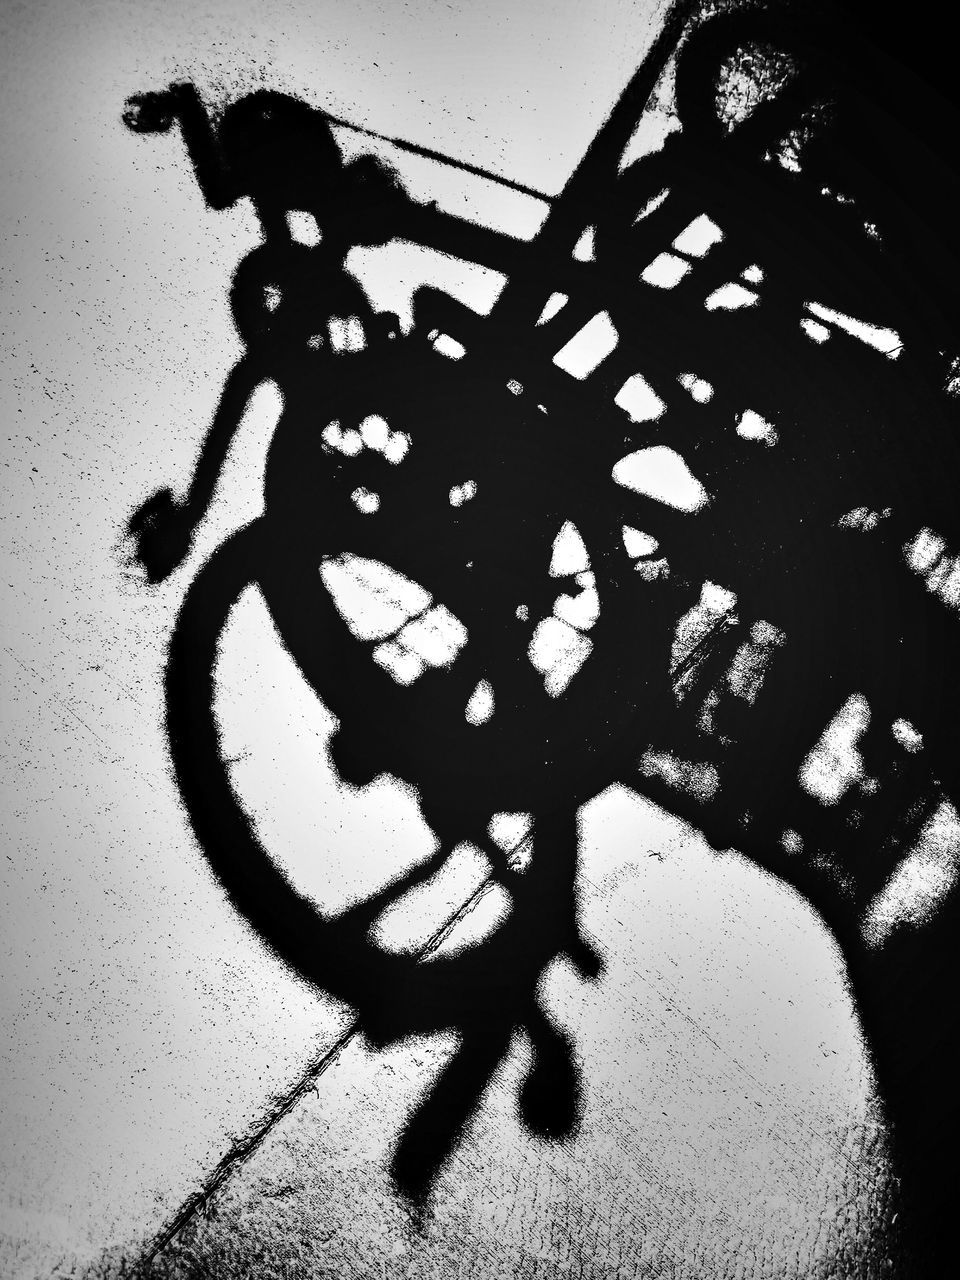 shadow, bicycle, high angle view, sunlight, focus on shadow, day, silhouette, outdoors, no people, nature, close-up